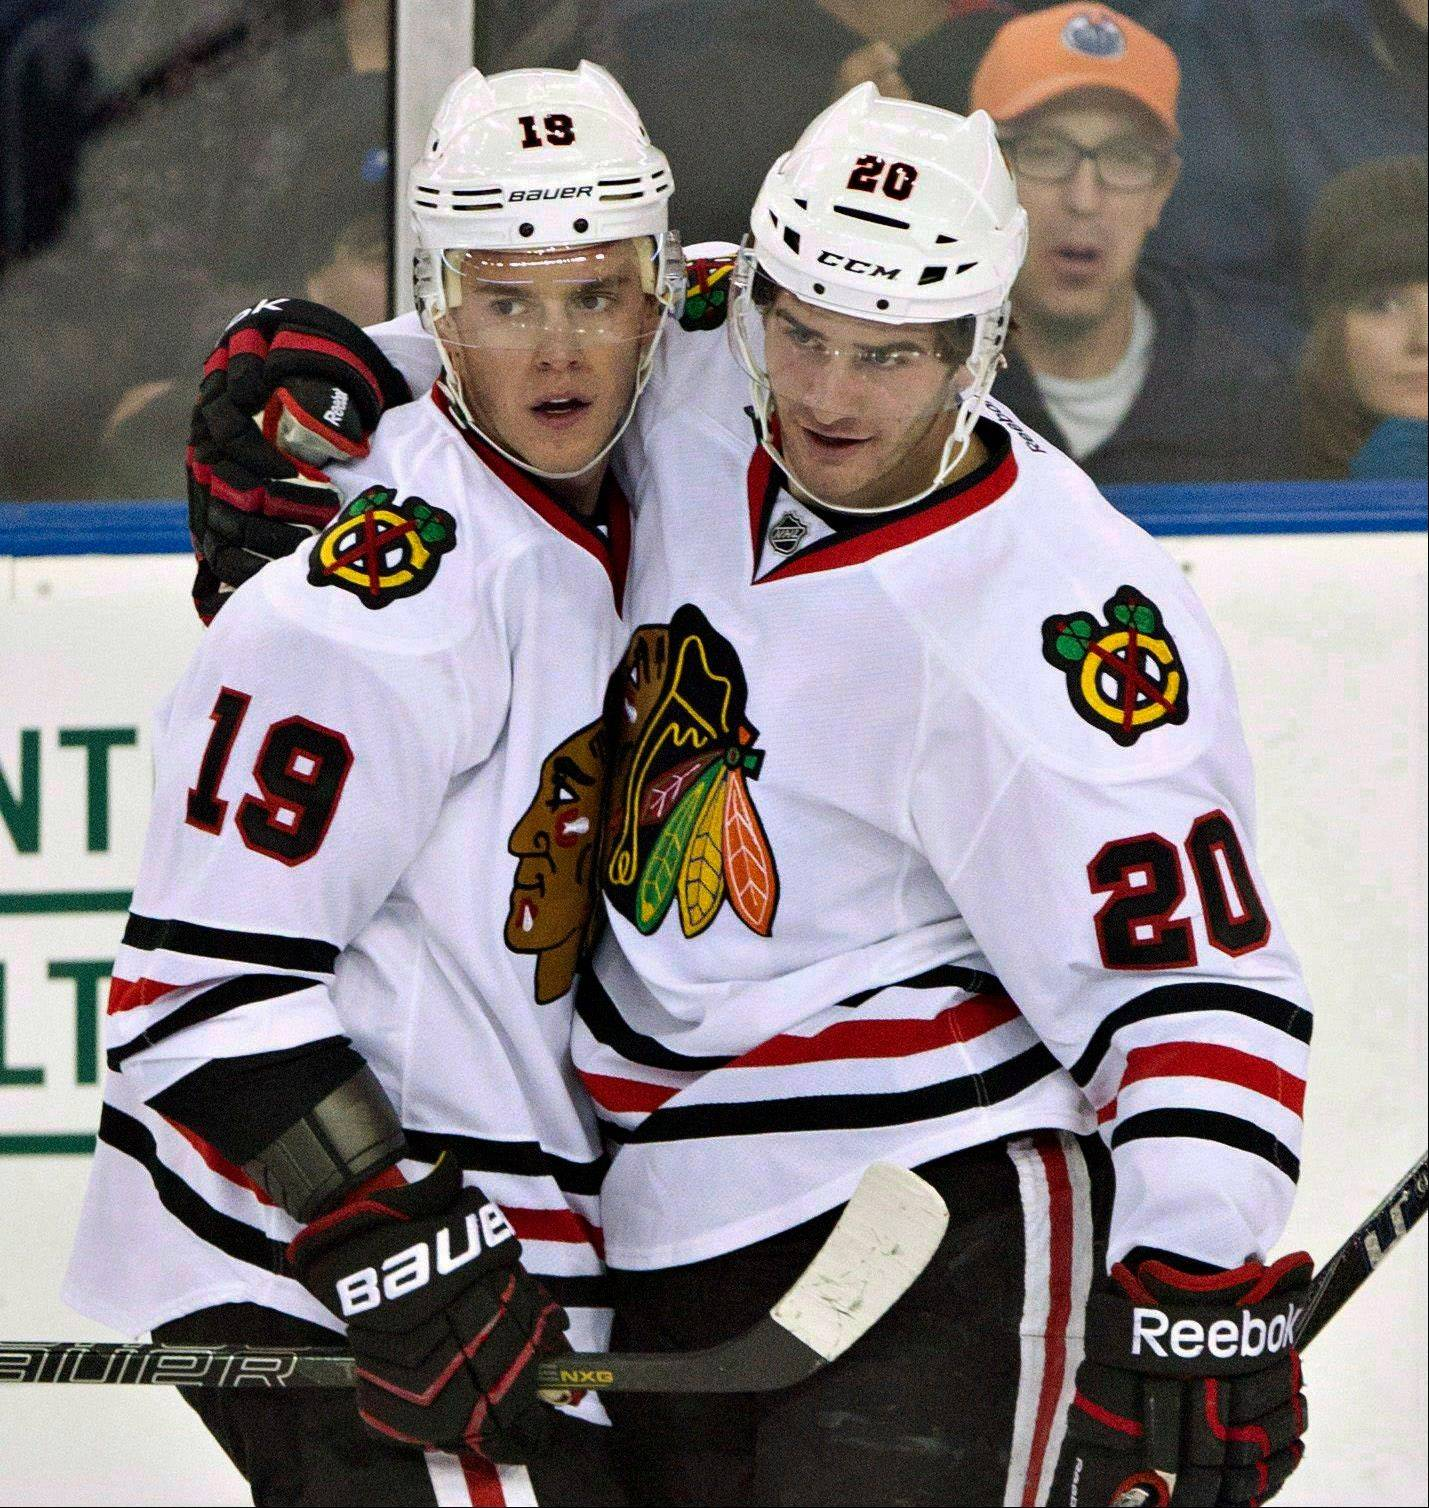 The Hawks' Brandon Saad, right, here with Jonathan Toews, is a finalist for the Calder Trophy, which the NHL awards to the top rookie.